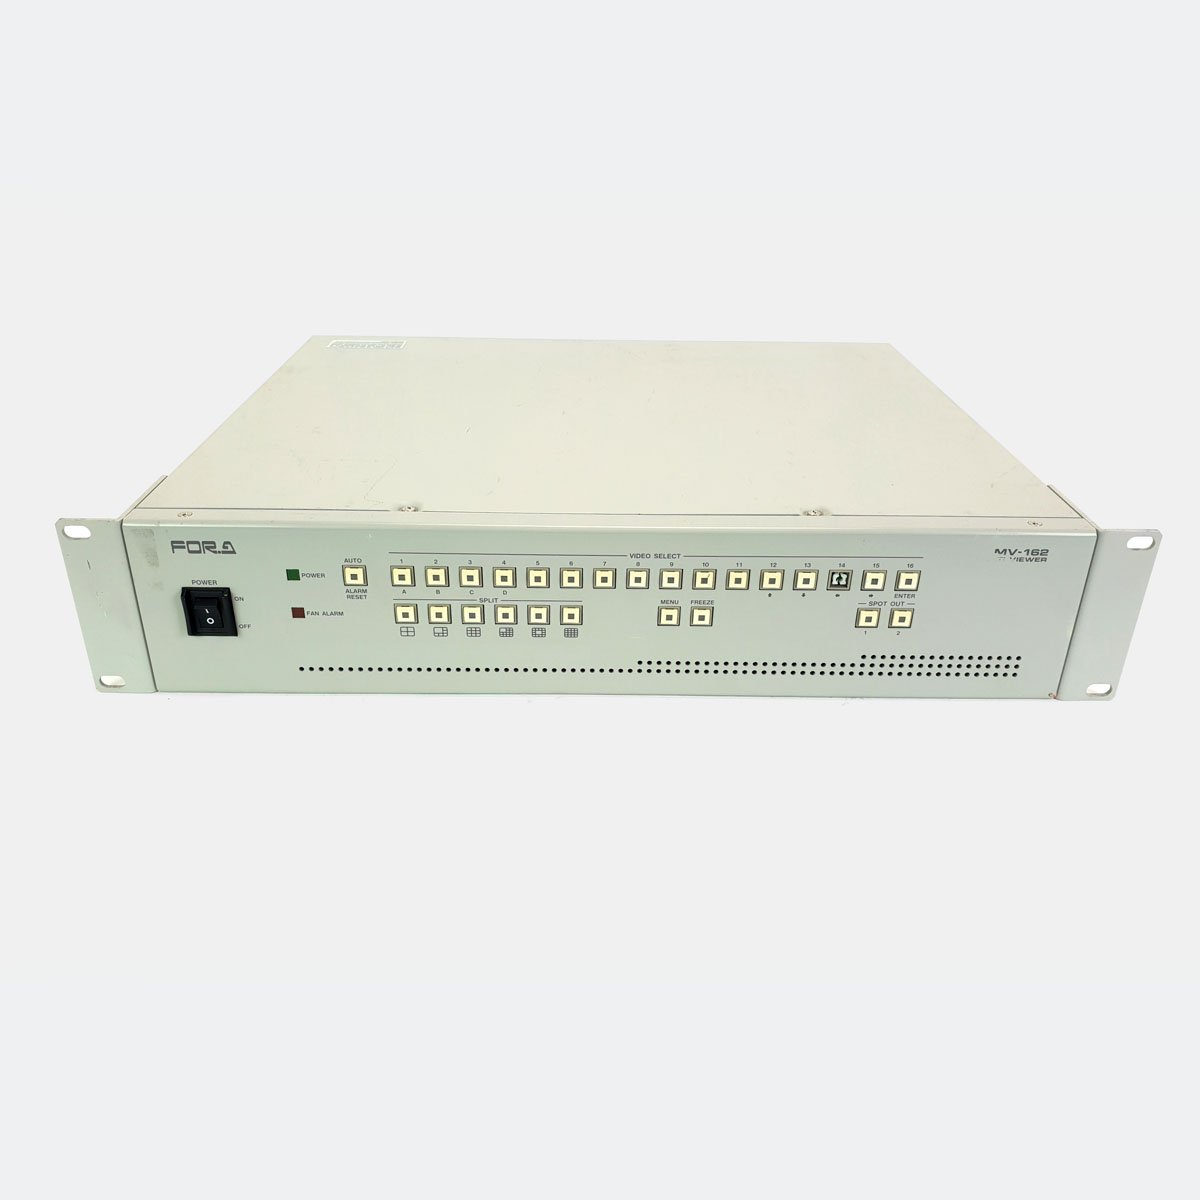 Used For-A MV-162F 16-Split Multi Viewer